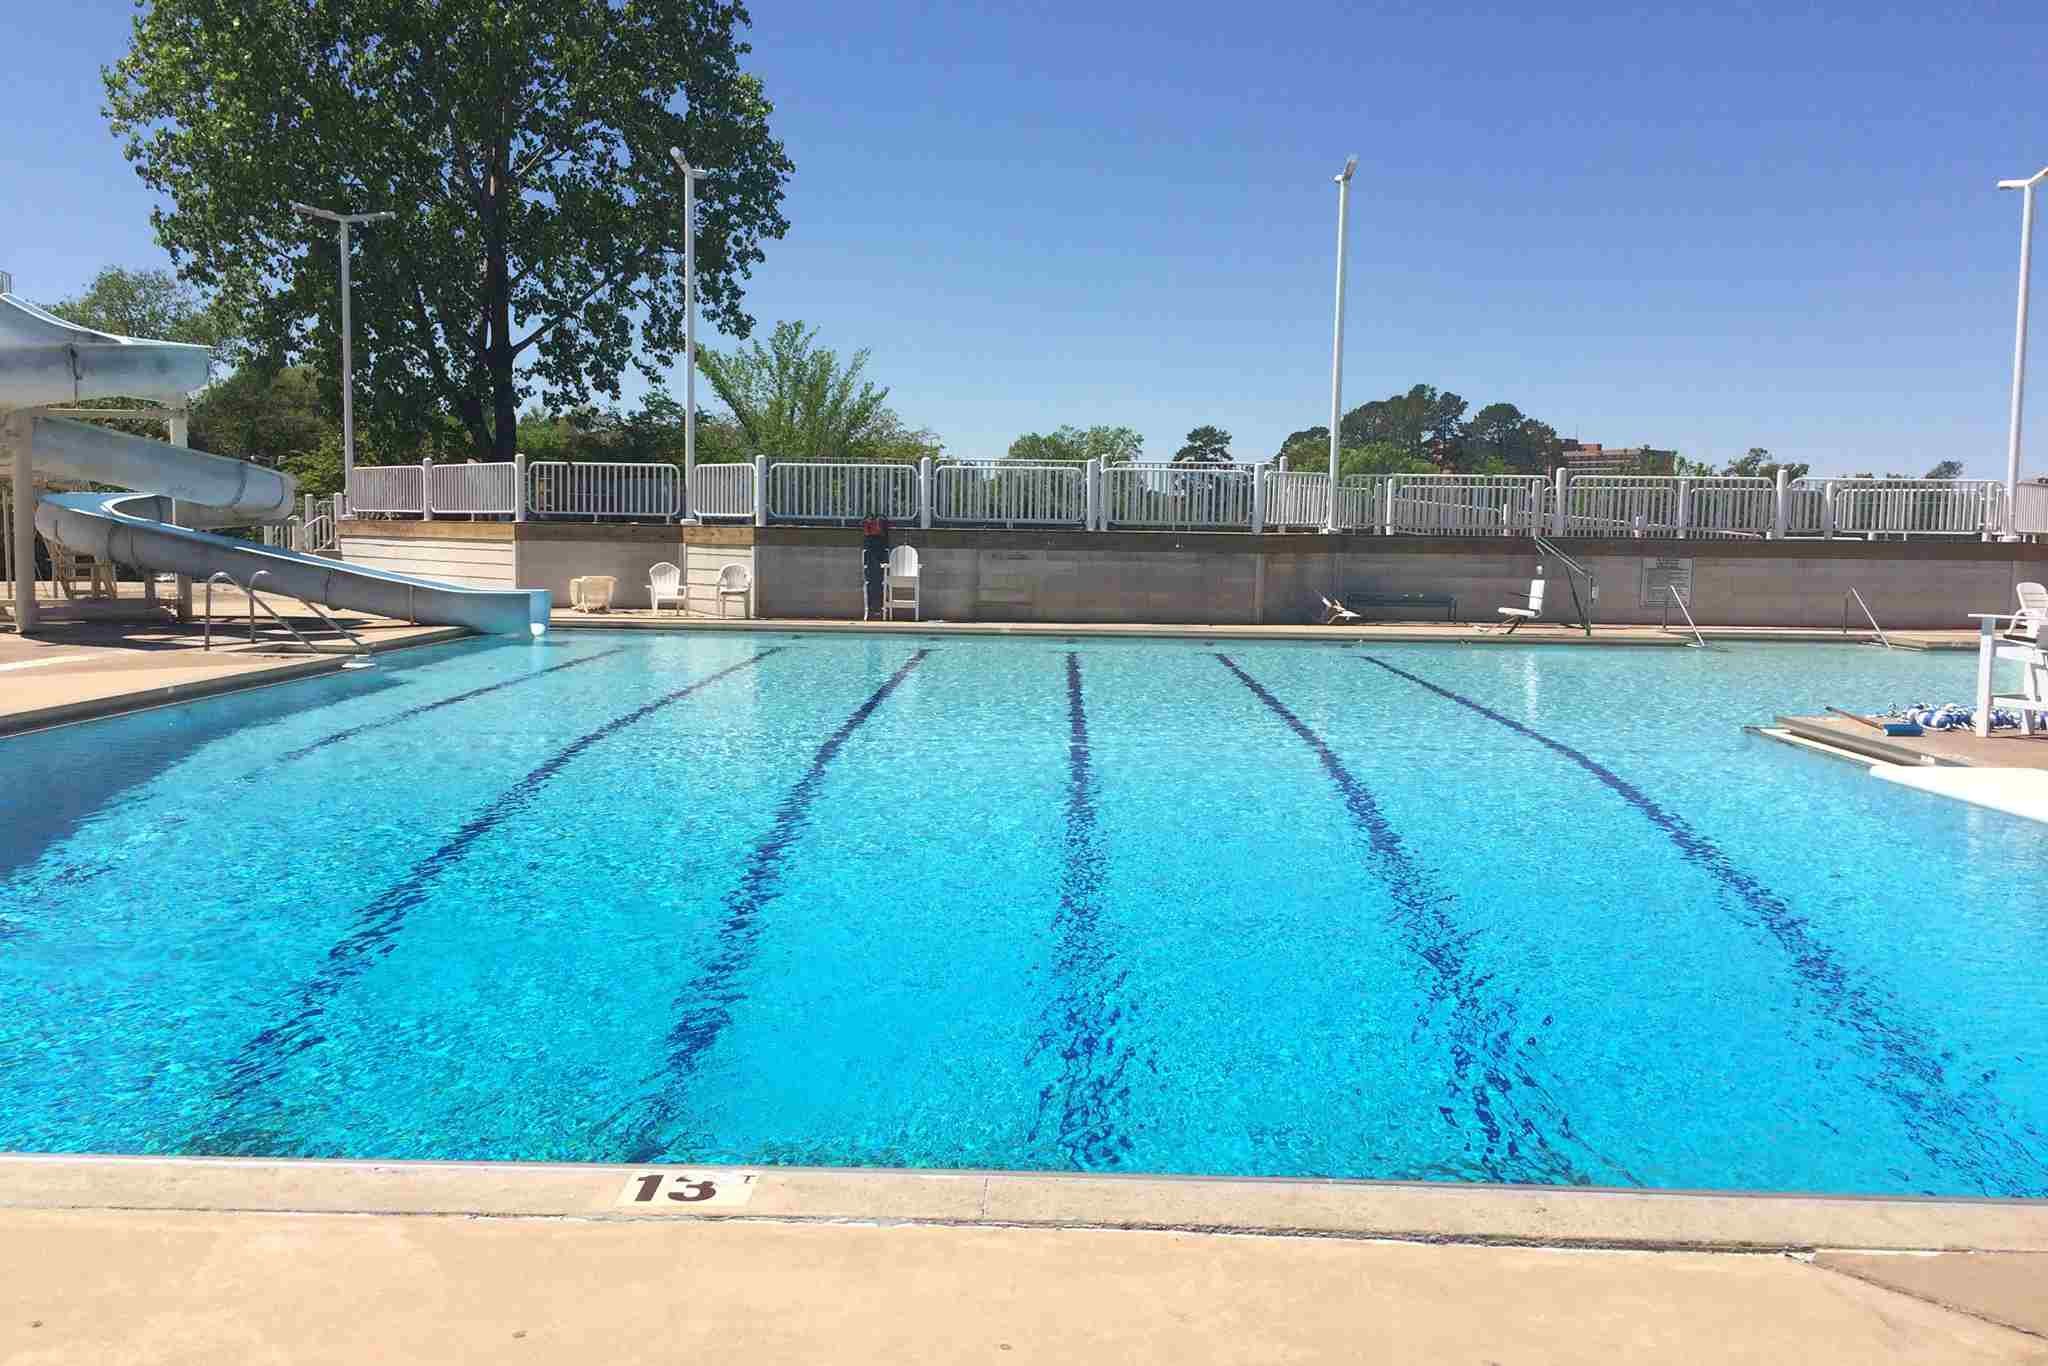 The Pool at the Jim Dailey Fitness & Aquatic Center